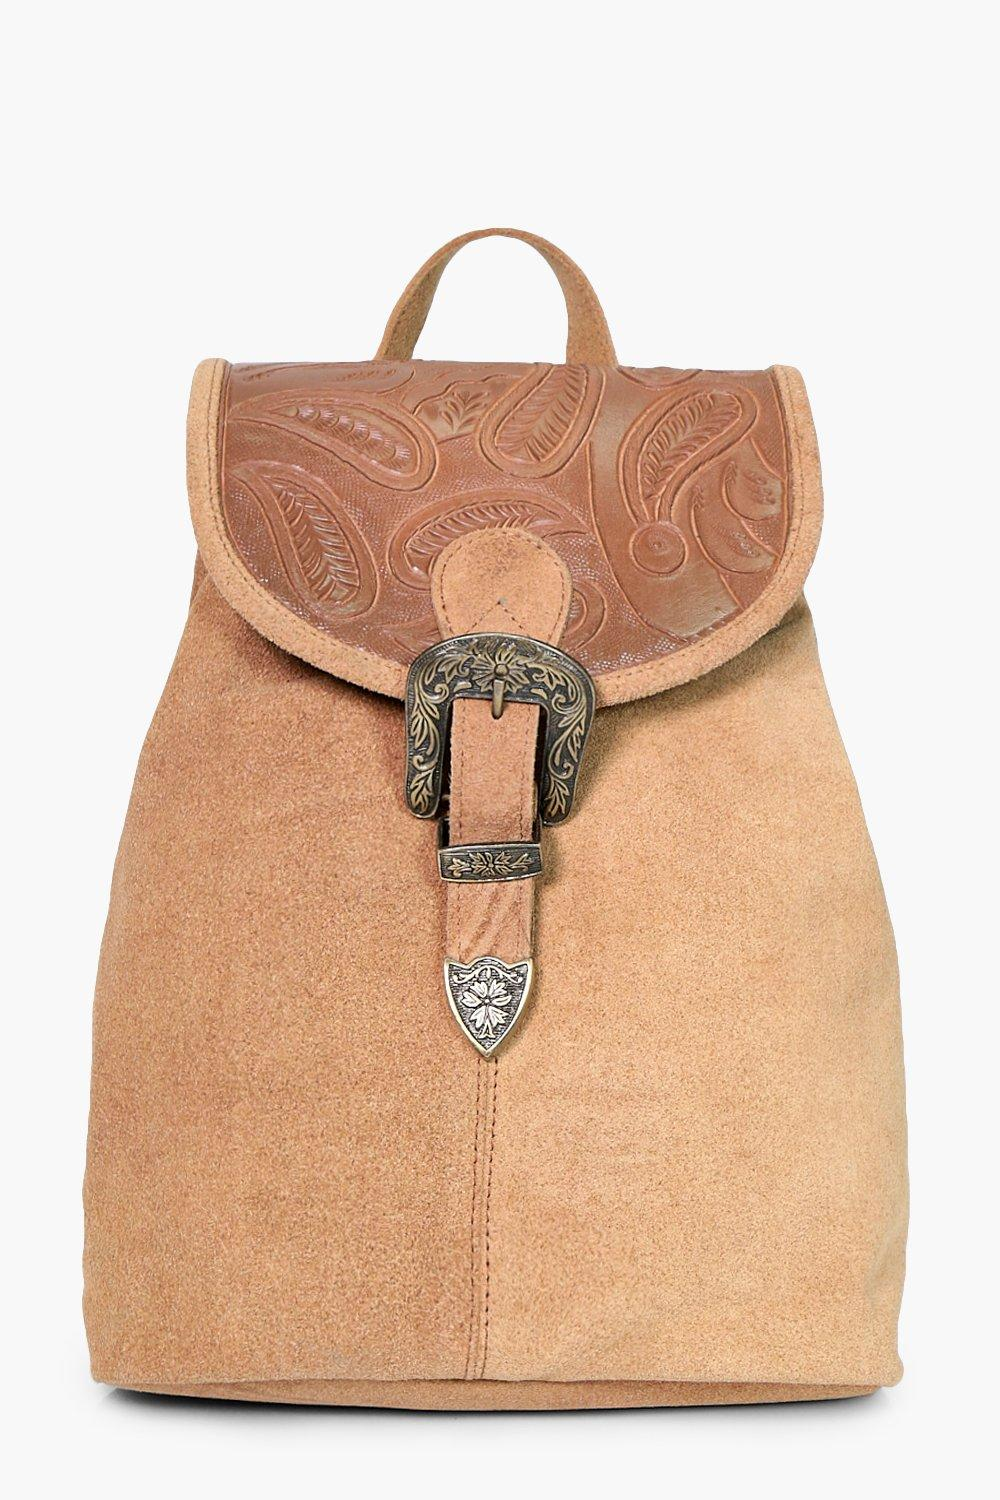 Boutique Leather Buckle Detail Backpack - tan - Is